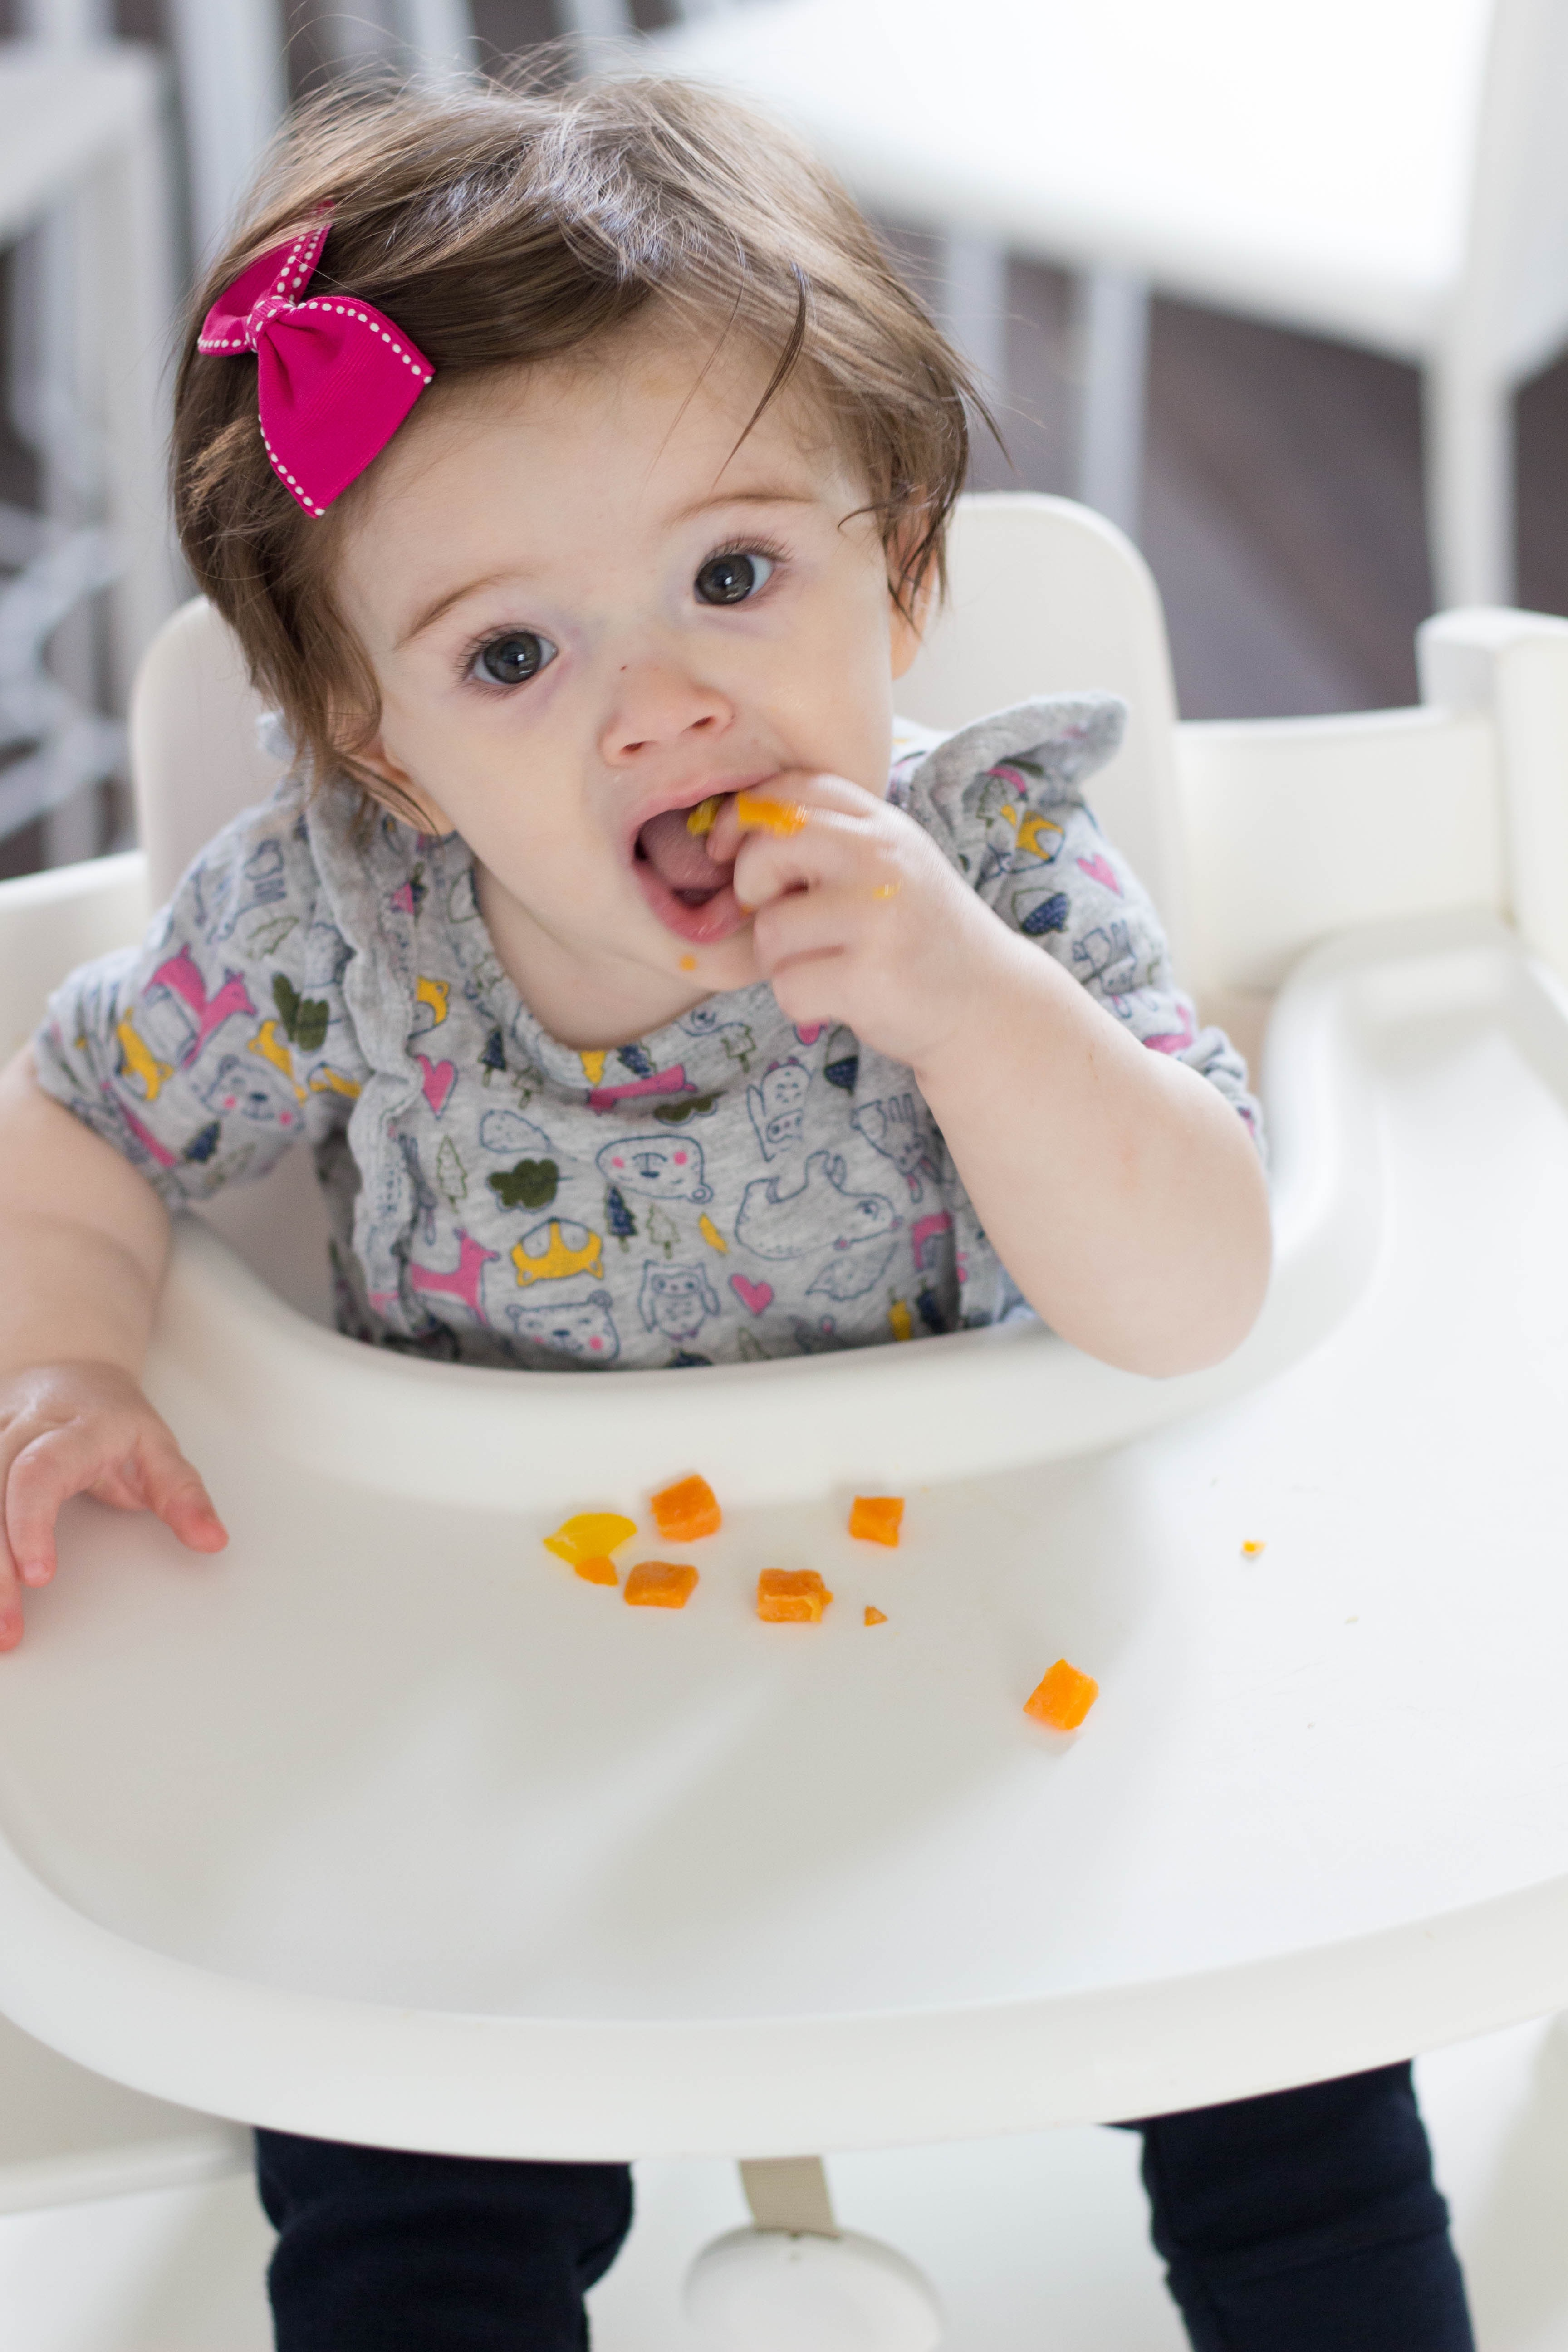 Baby eating food in a high chair